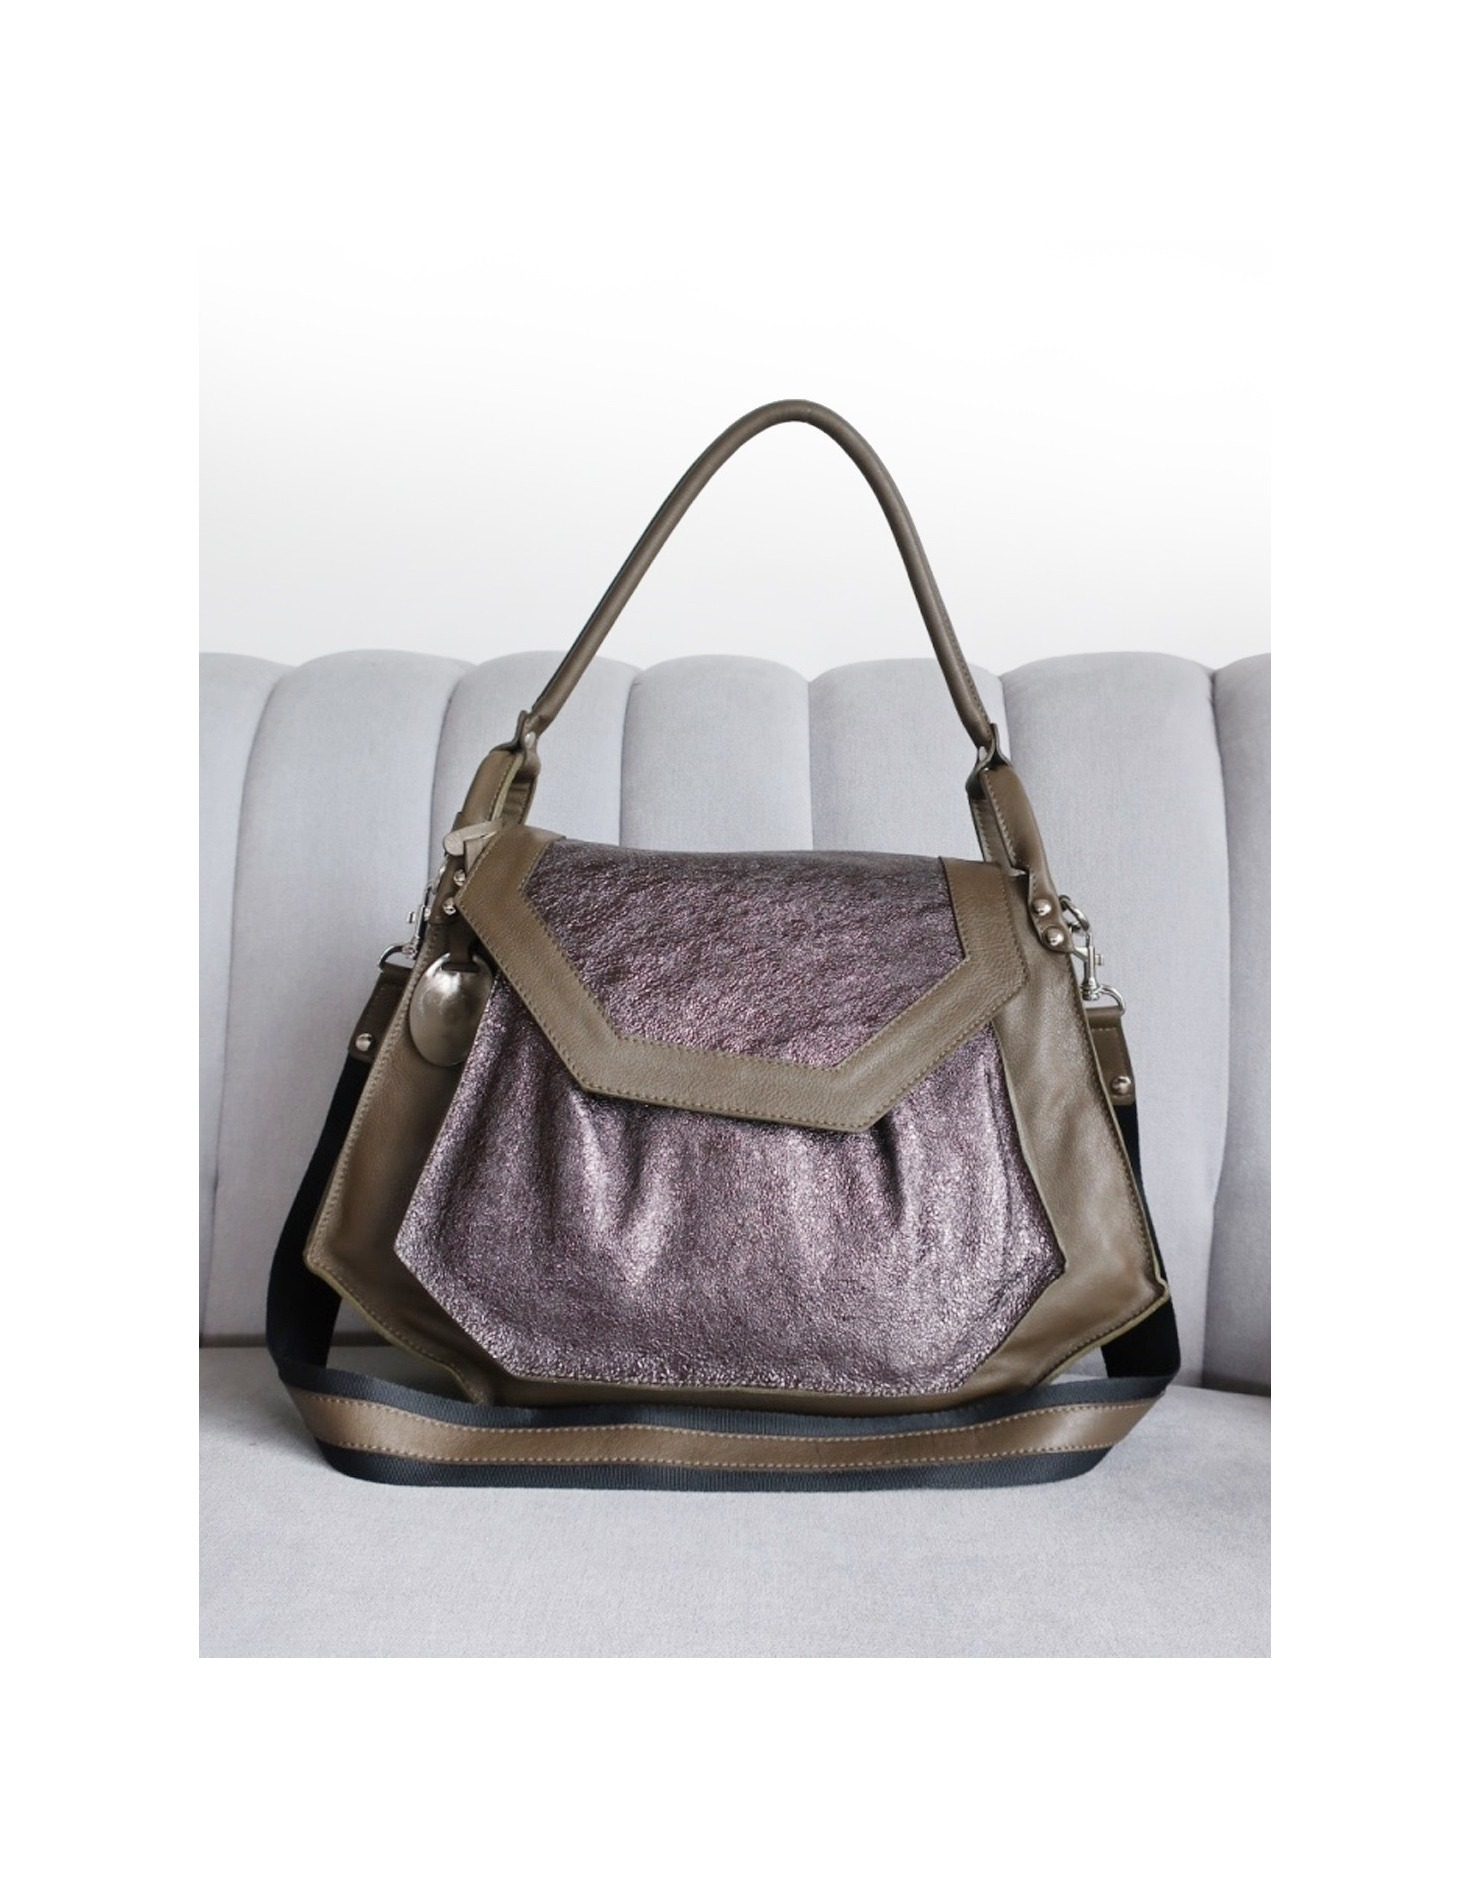 Olivia bag in Olive and Pewter sparkle. Loading zoom a82117ff23b45